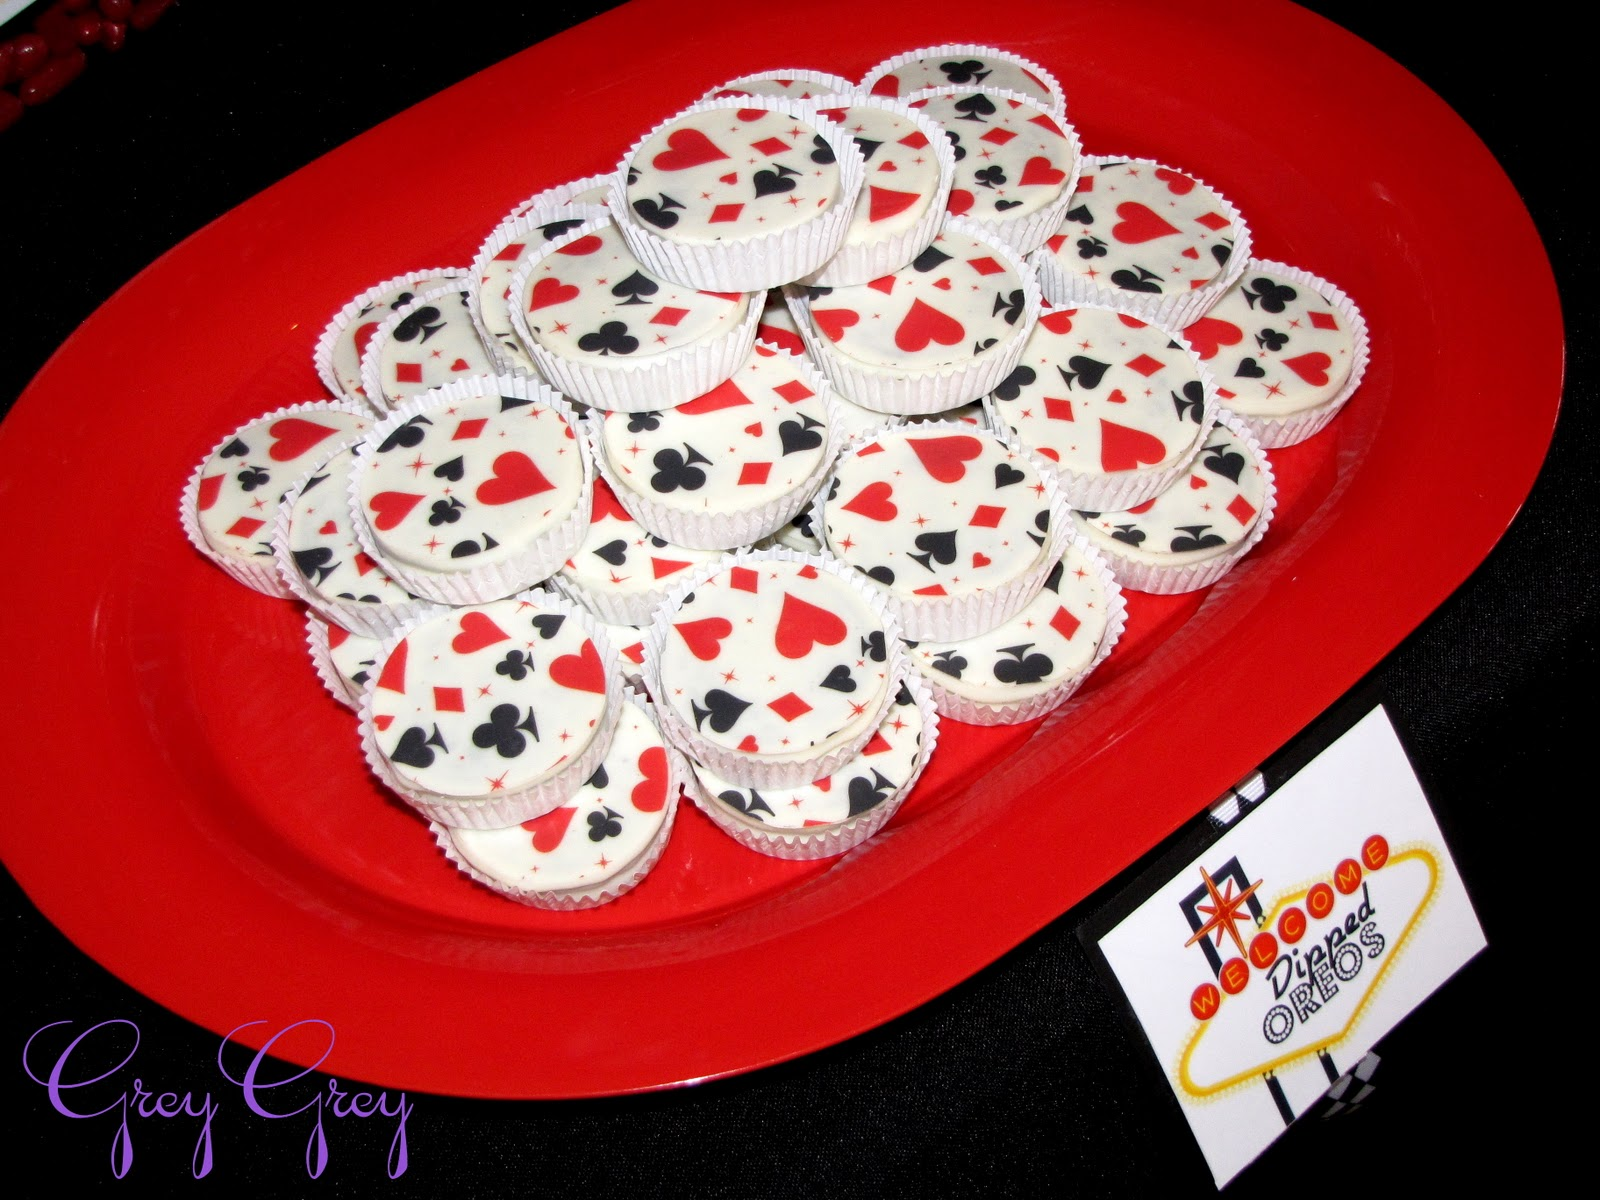 Casino 40th birthday party